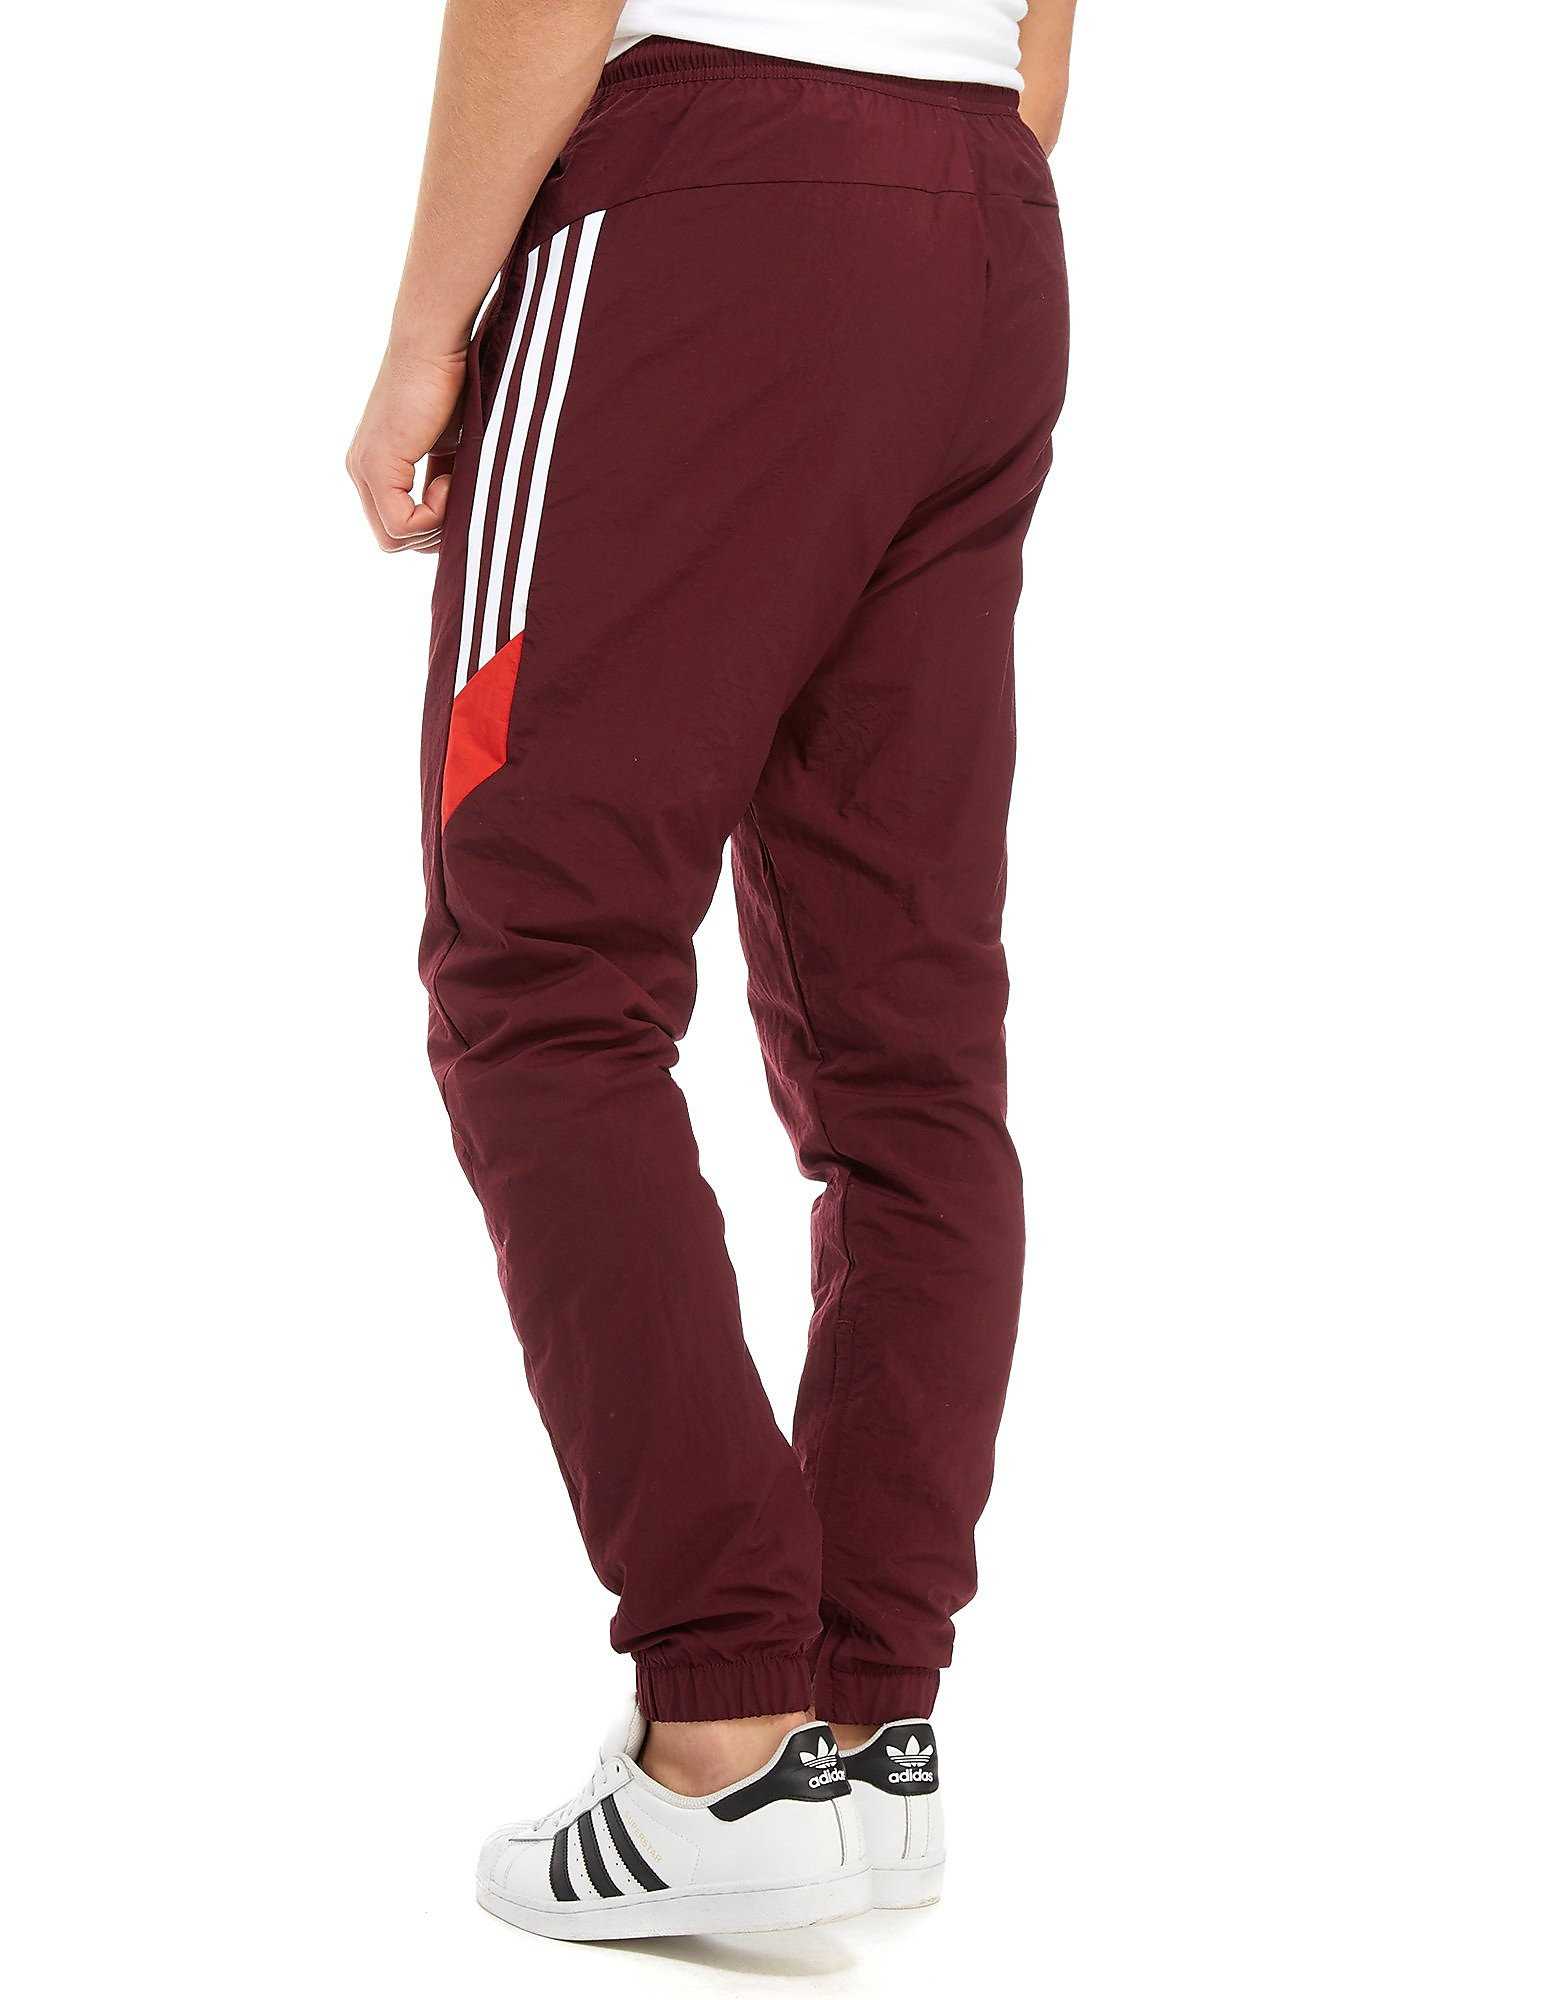 adidas Originals Challenger Pants